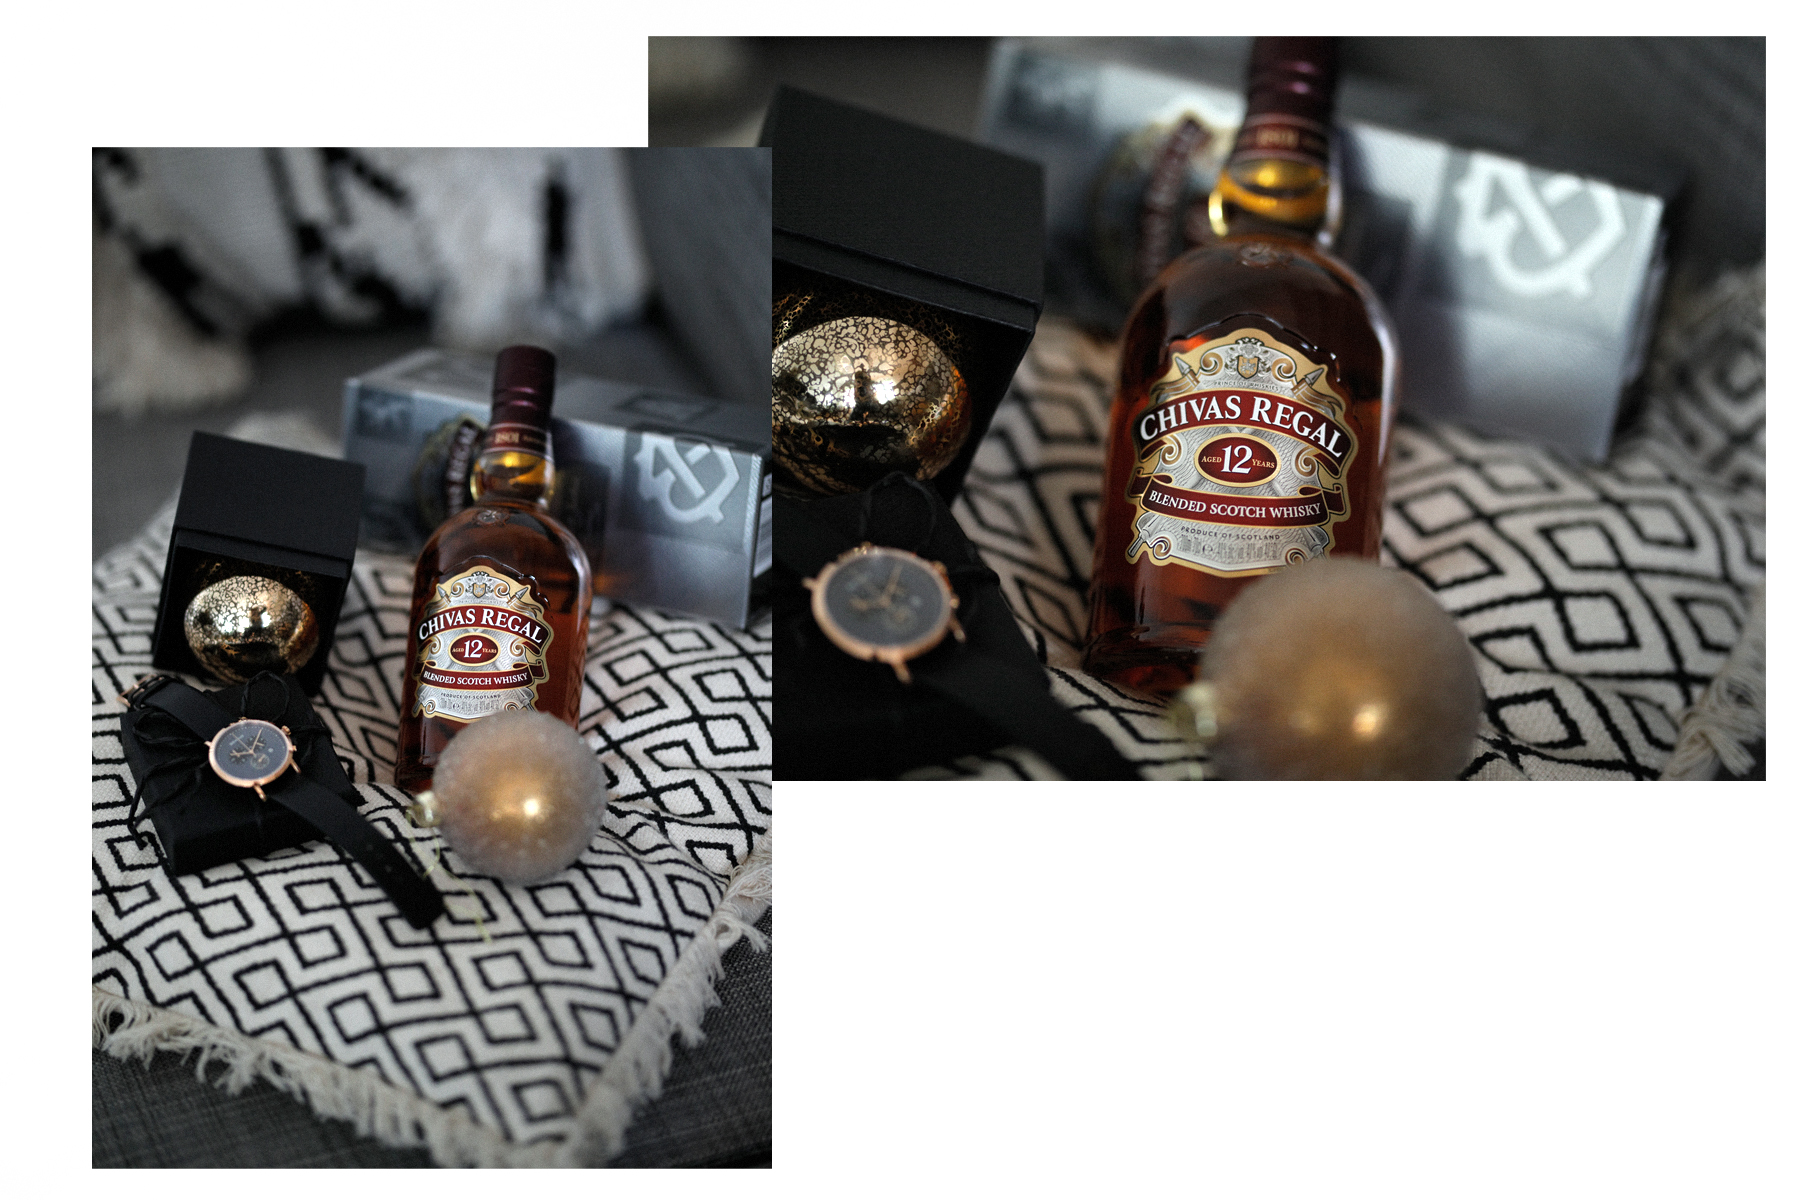 last minute gift guide monkey 47 gin thomas sabo jewelry melvita chivas regal 12 years whiskey bering uhren watches geschenke weihnachten christmas catsanddogsblog ricarda schernus max bechmann düsseldorf 5